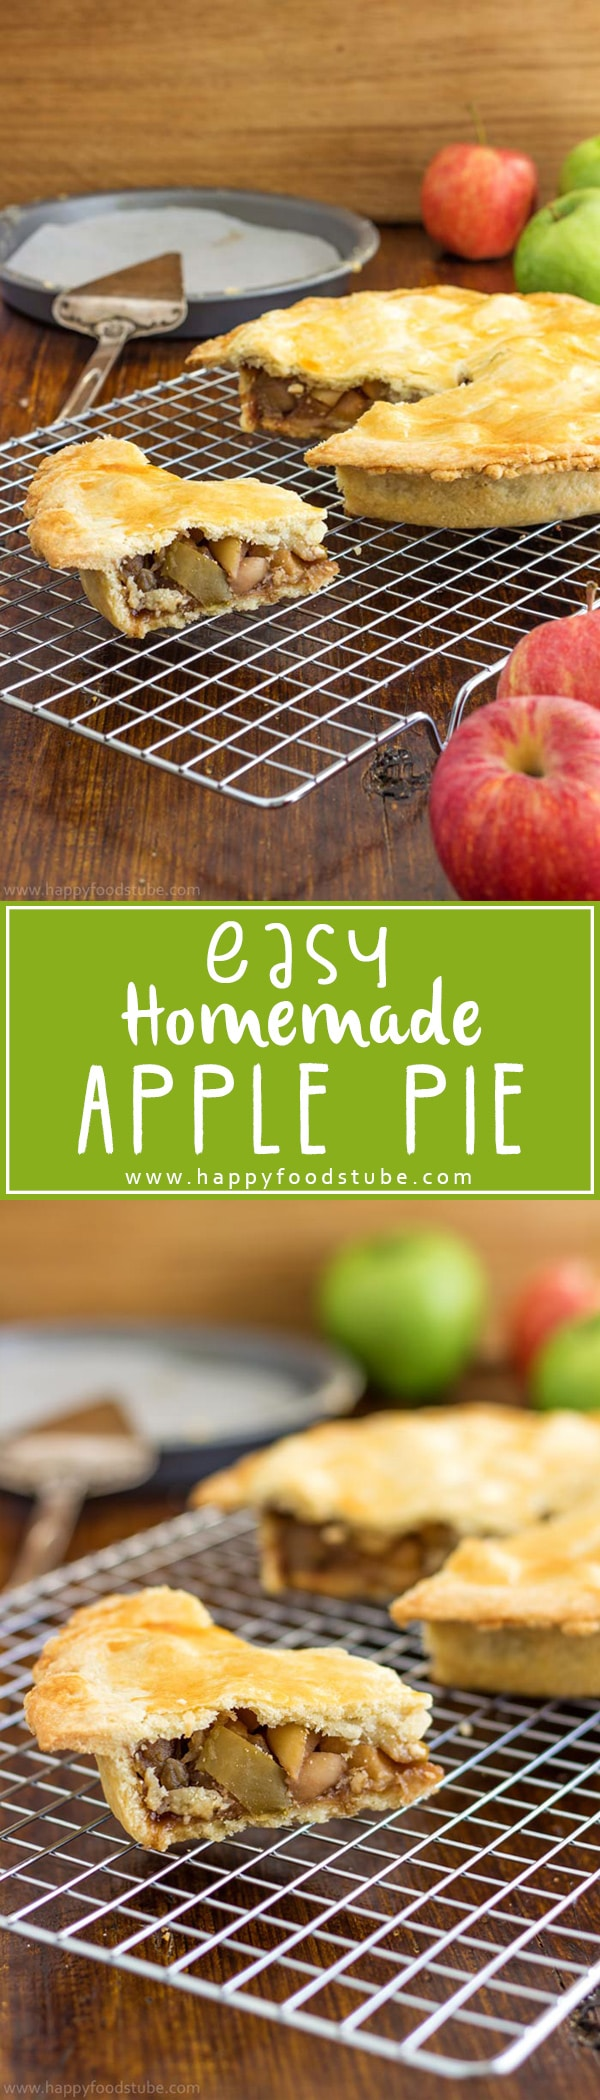 Easy homemade apple pie recipe with shortcrust pastry is as delicious as it sounds. Made from scratch including the pastry crust and simple apple pie filling. Only 4 ingredients and super easy to bake. #applepie #baking #shortcrustpastry